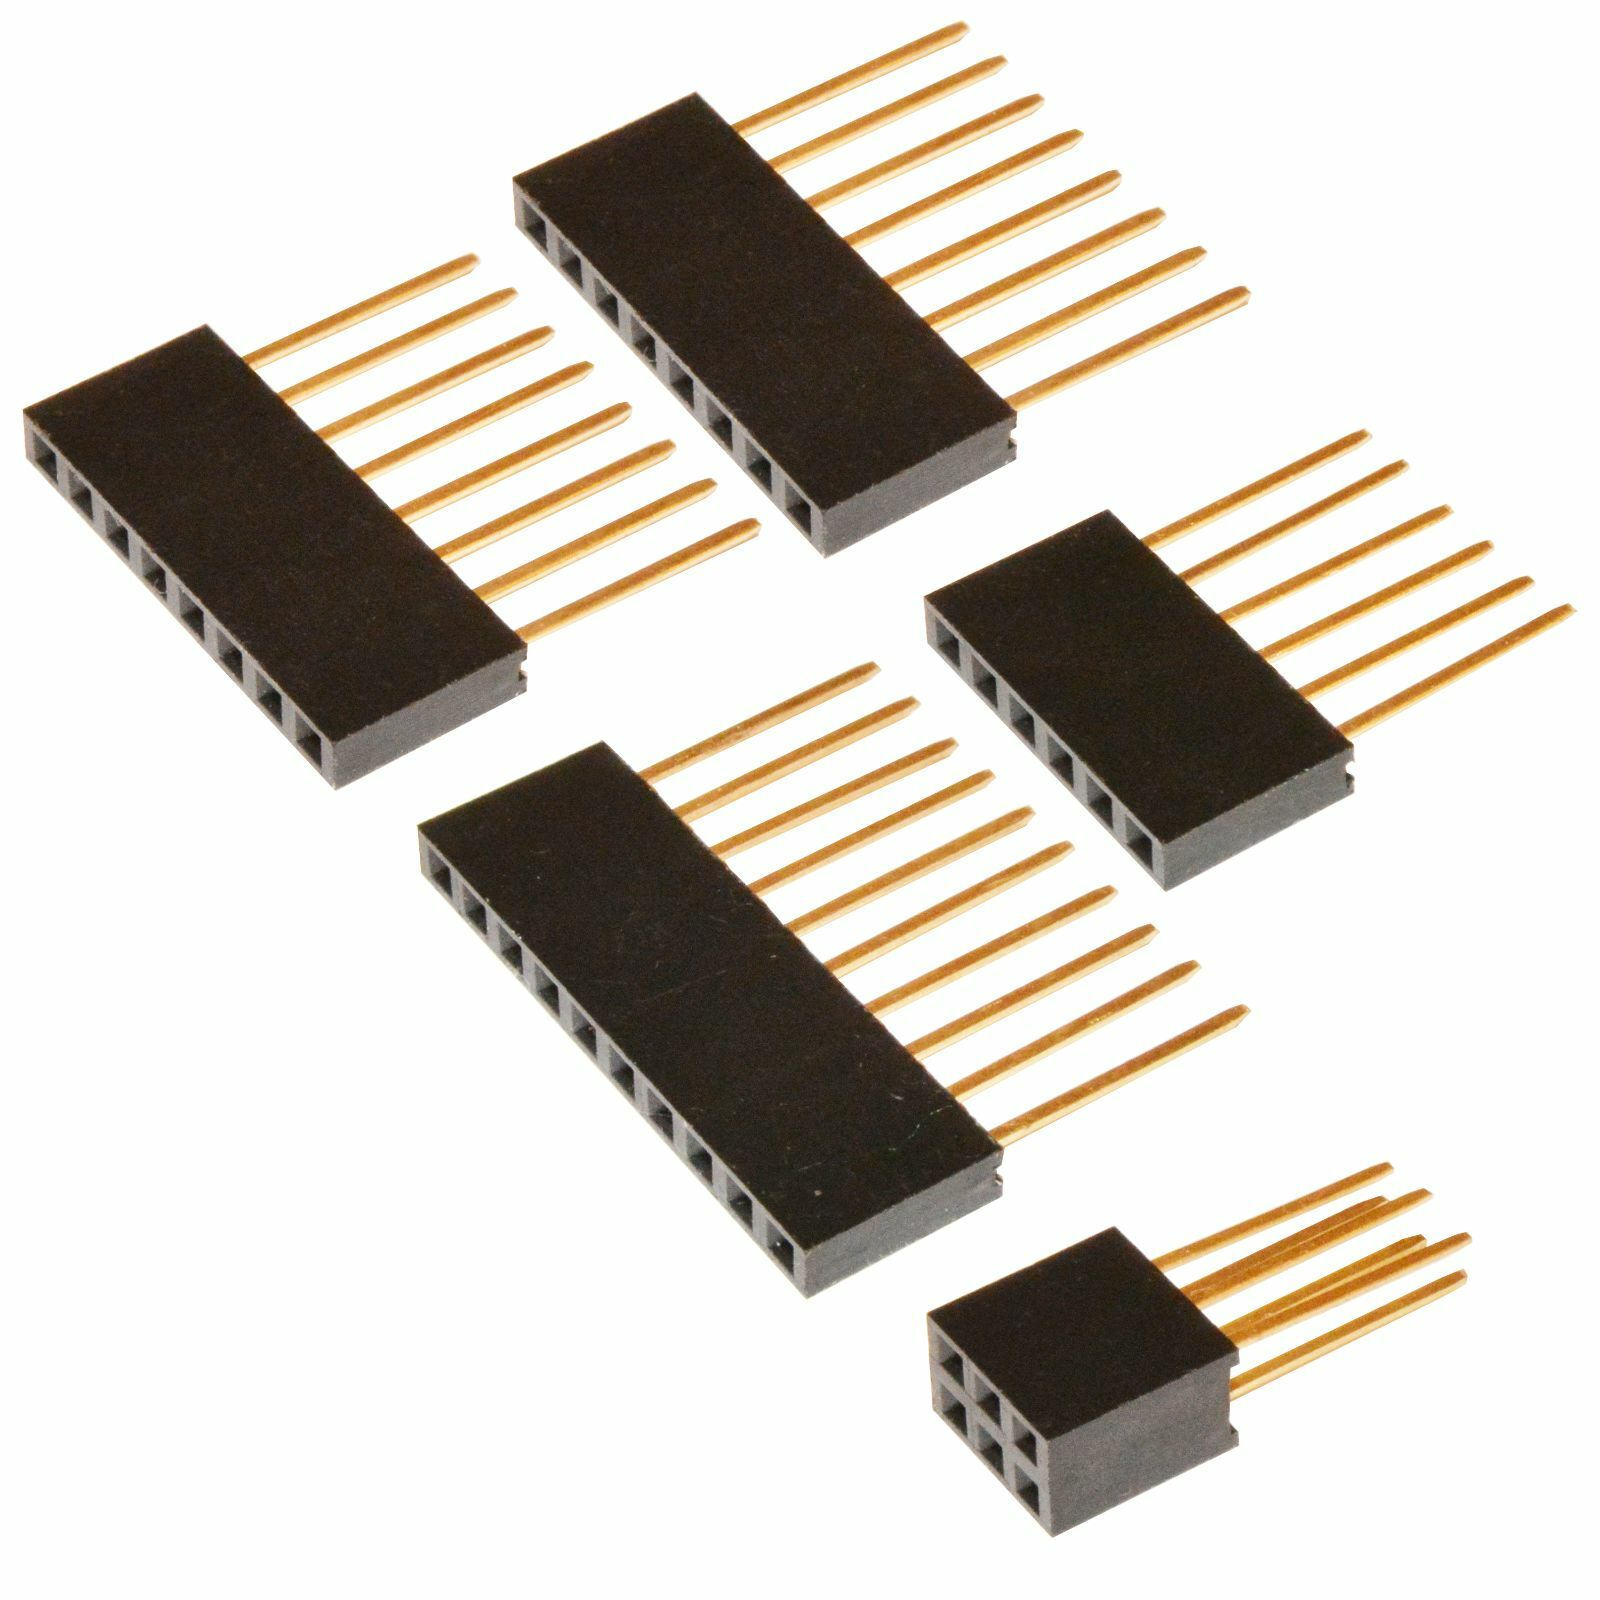 Digikey Stackable Headers : AskElectronics